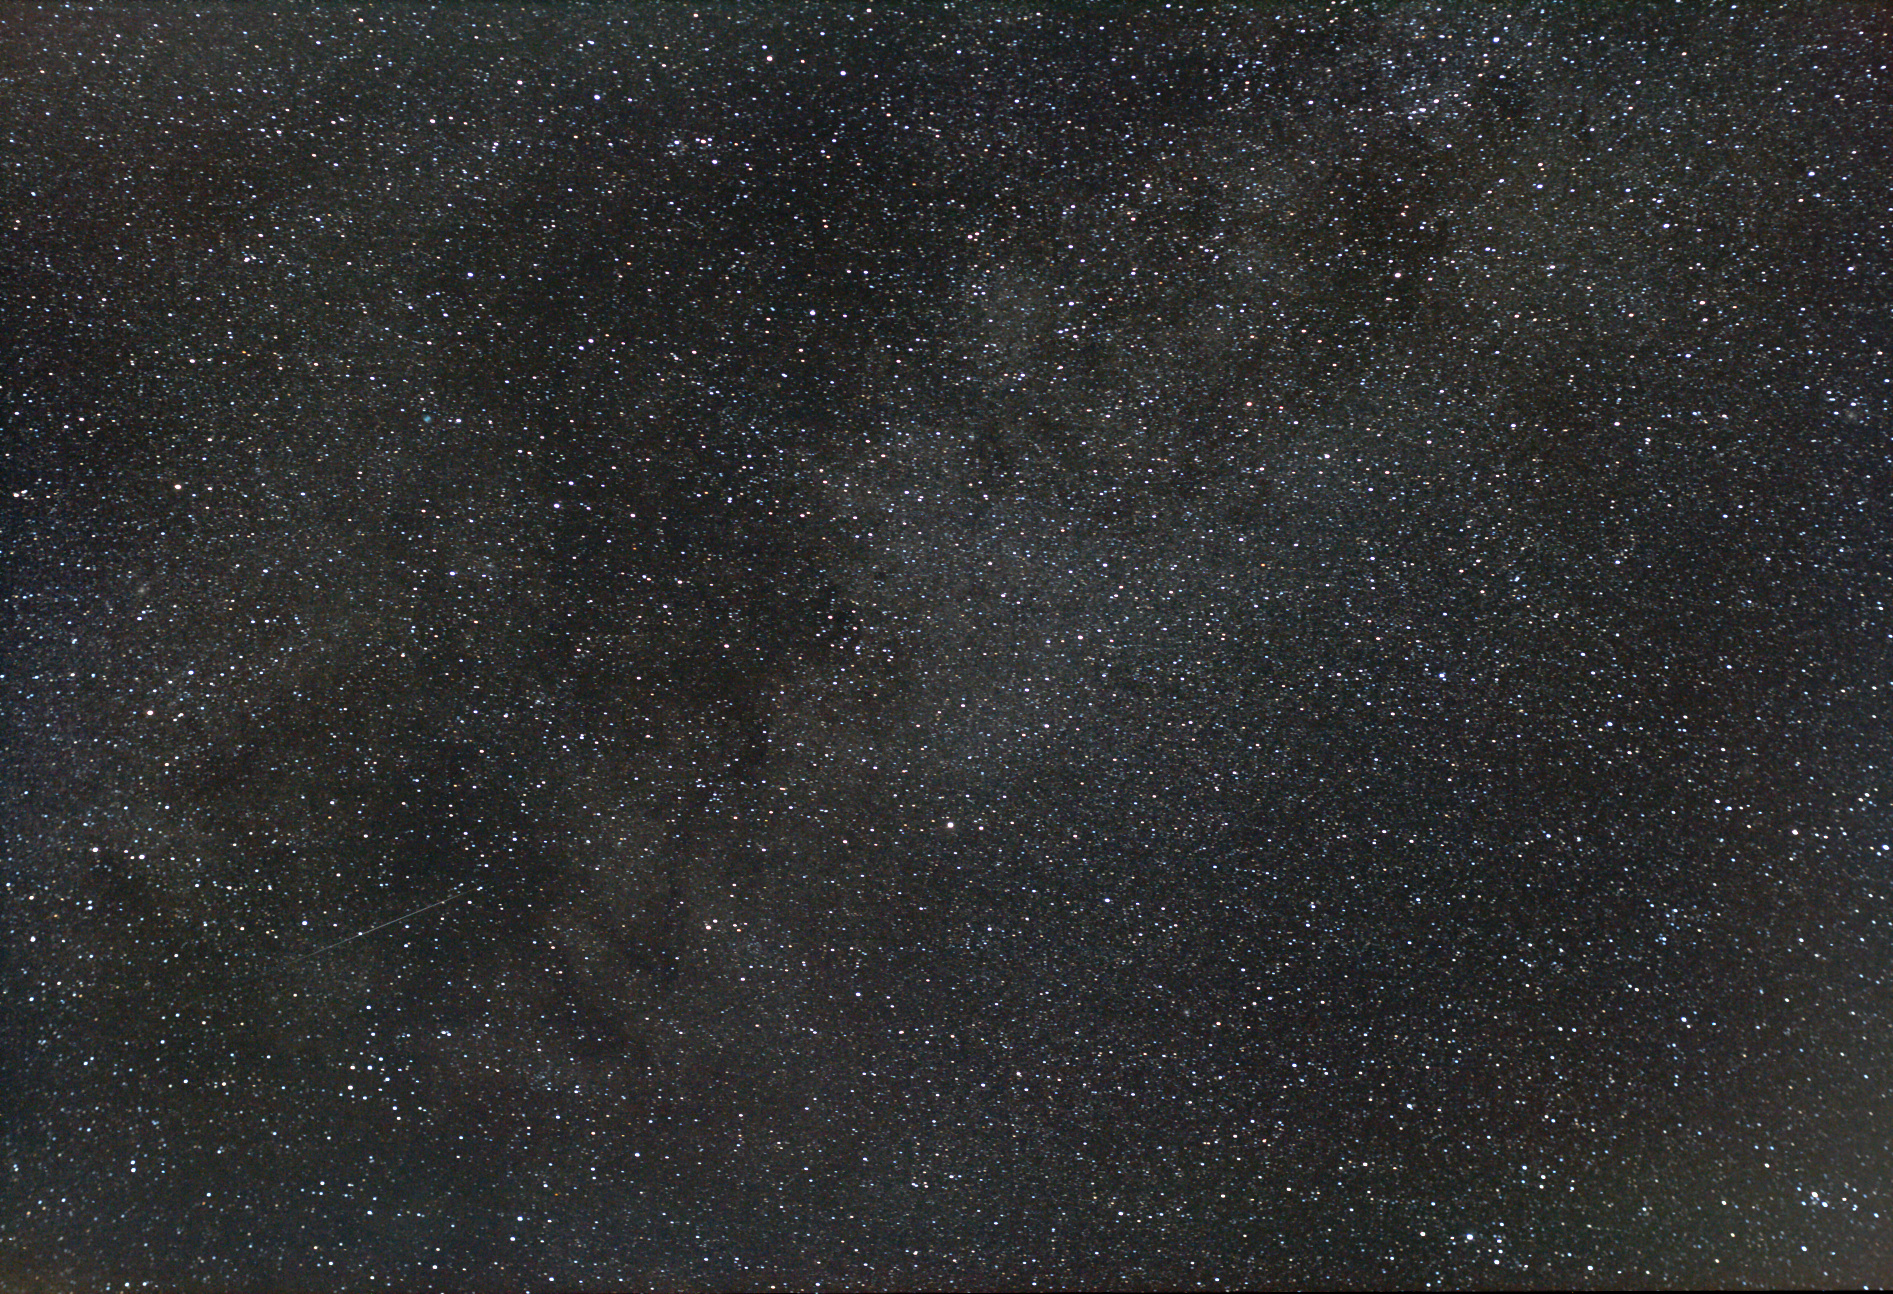 Portion of the Milky Way near Vulpecula.